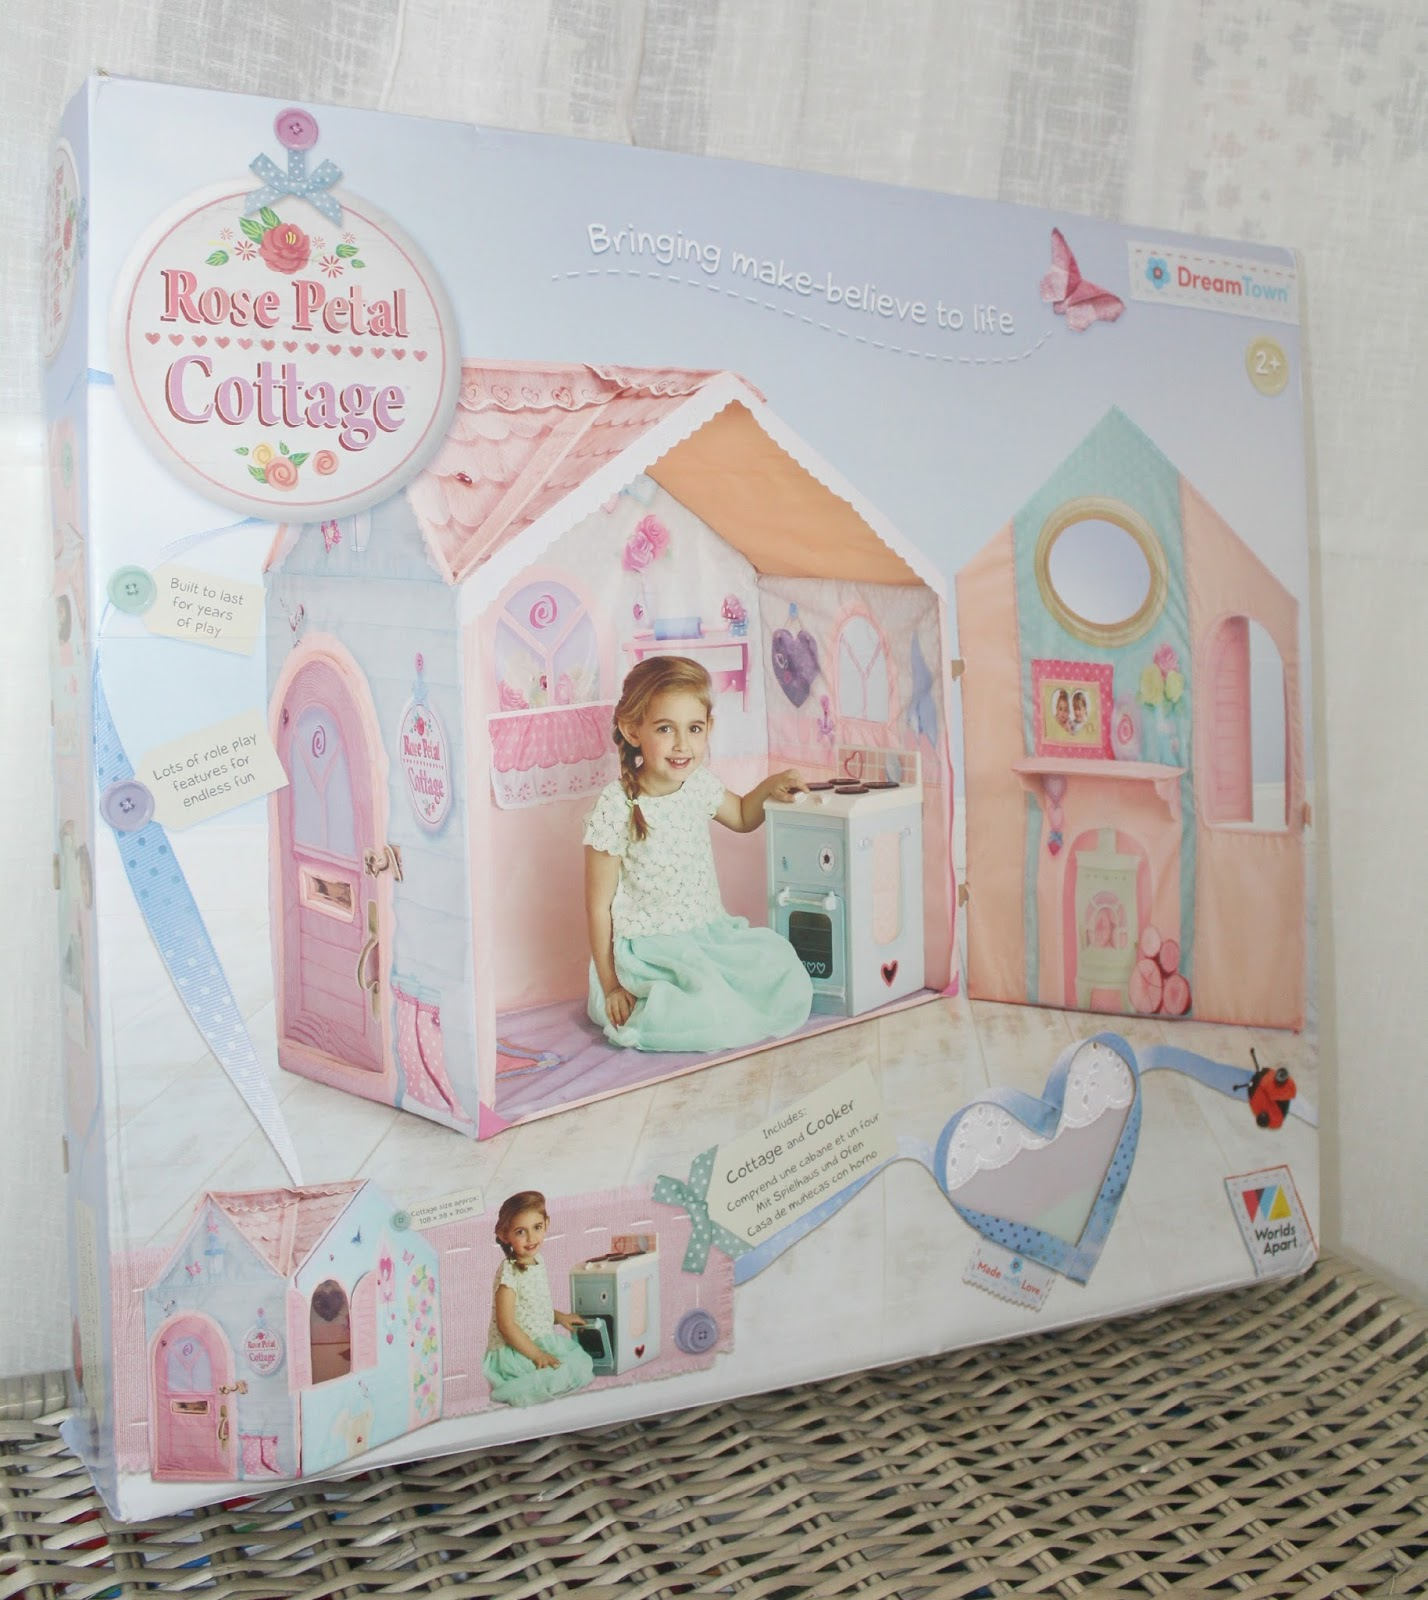 dream town rose petal cottage instructions